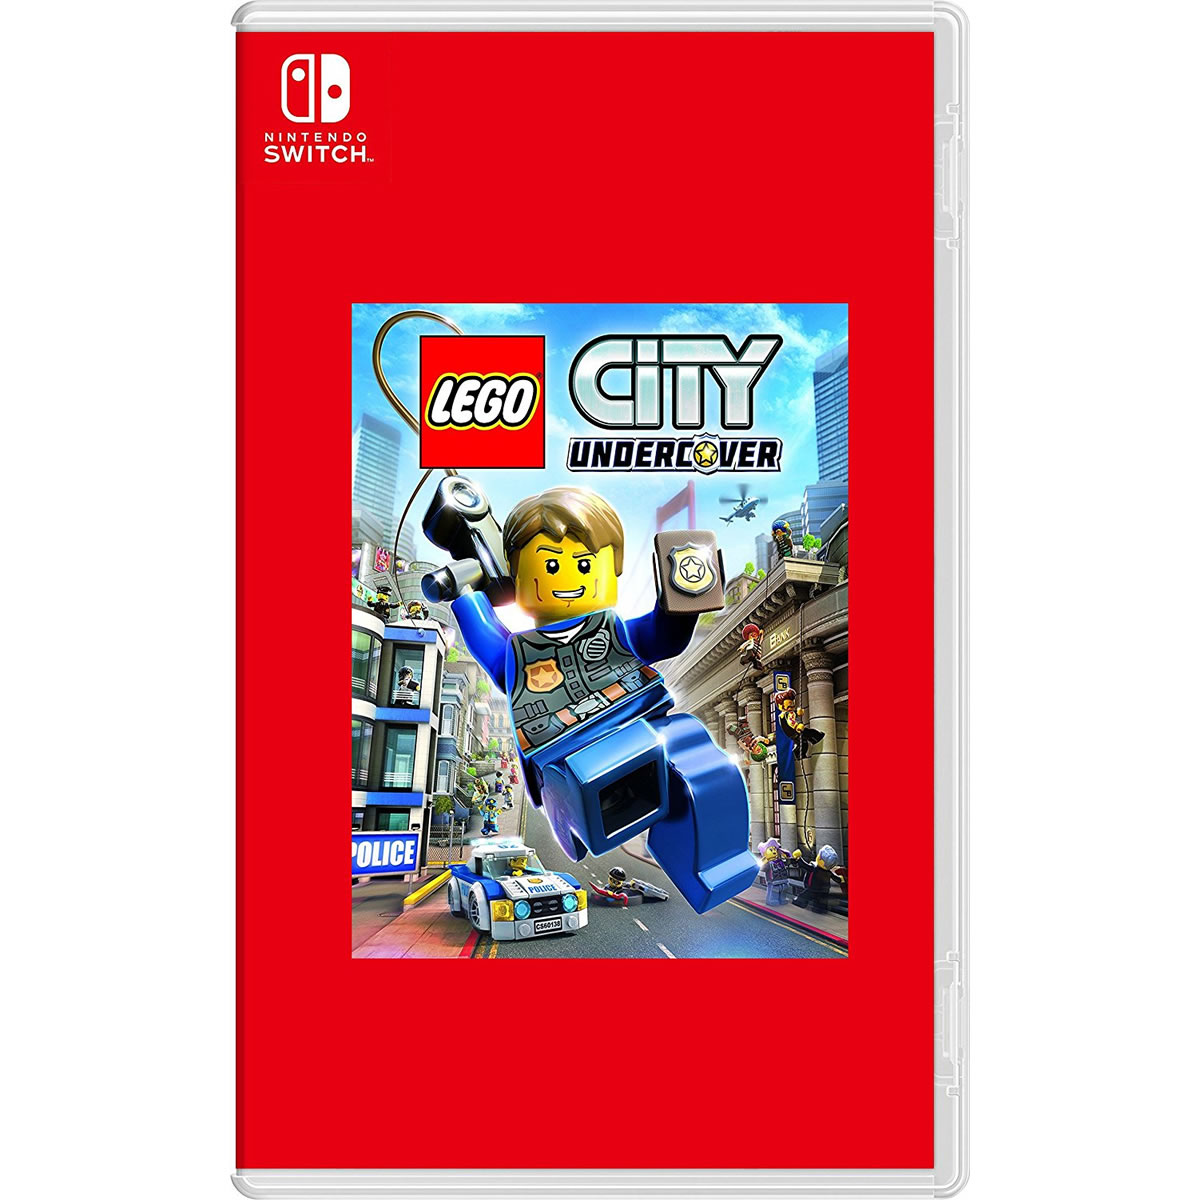 LEGO CITY UNDERCOVER (NSW)